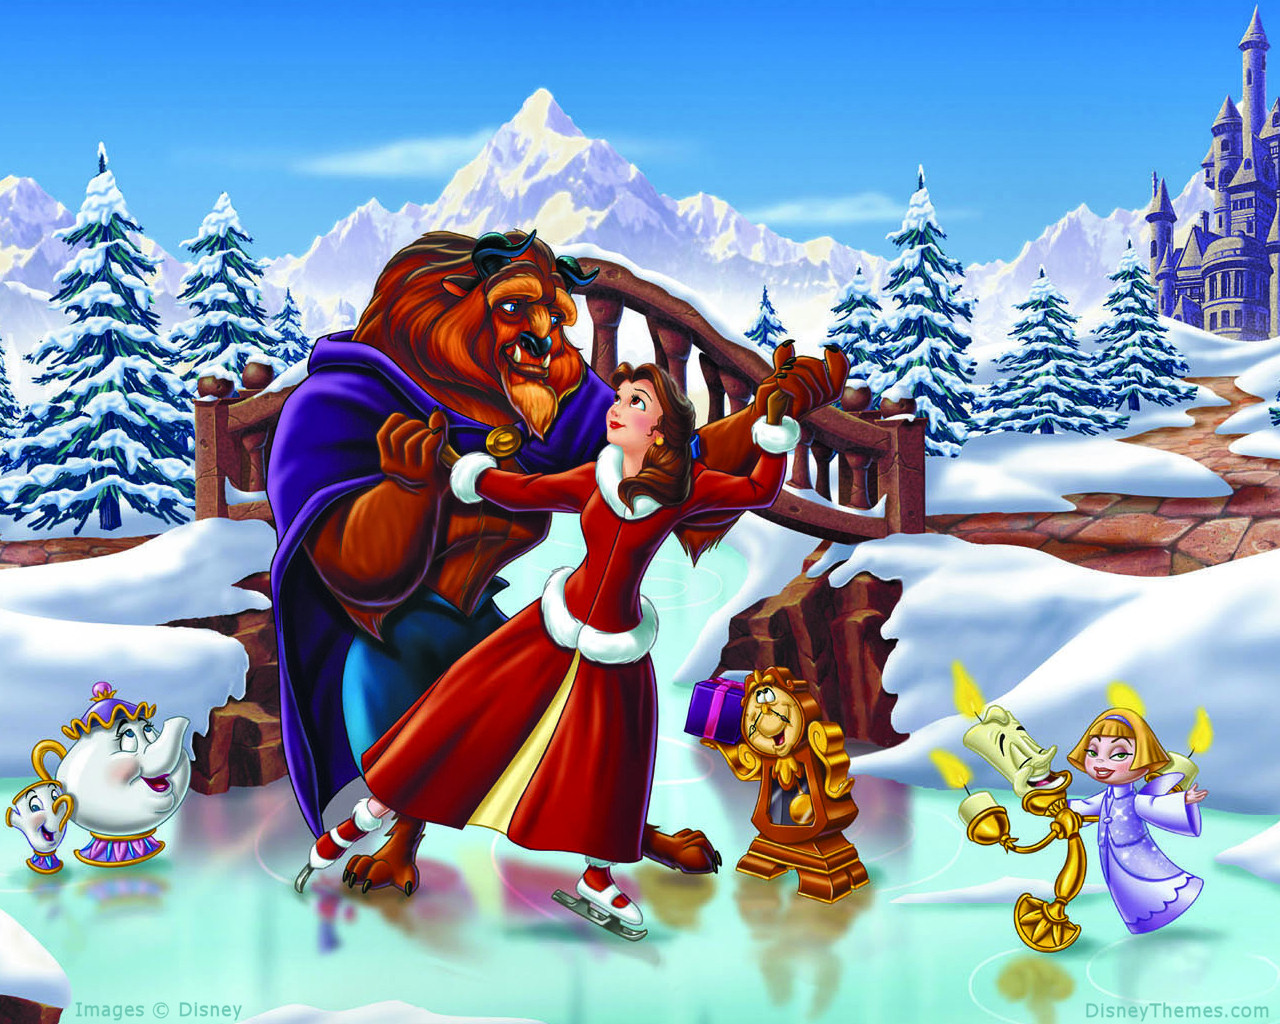 Disney Christmas Wallpapers [1024x768] 1280x1024